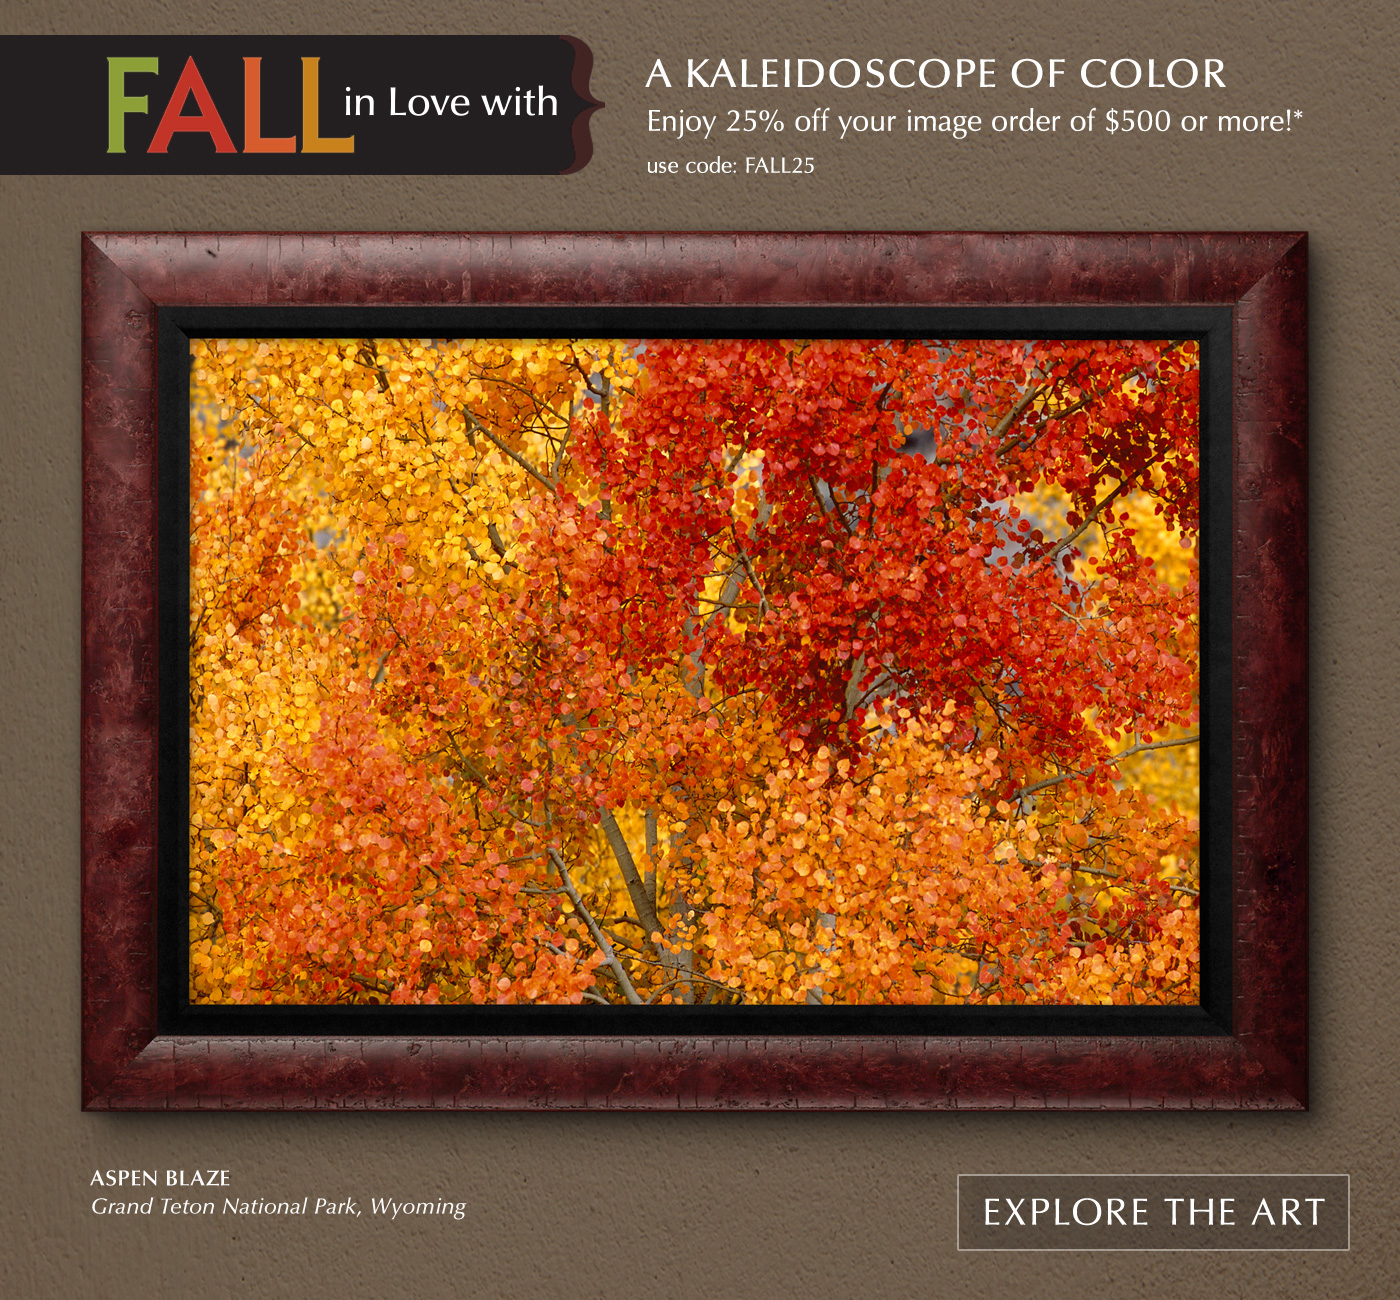 FALL in Love with a Kaleidoscope of Color